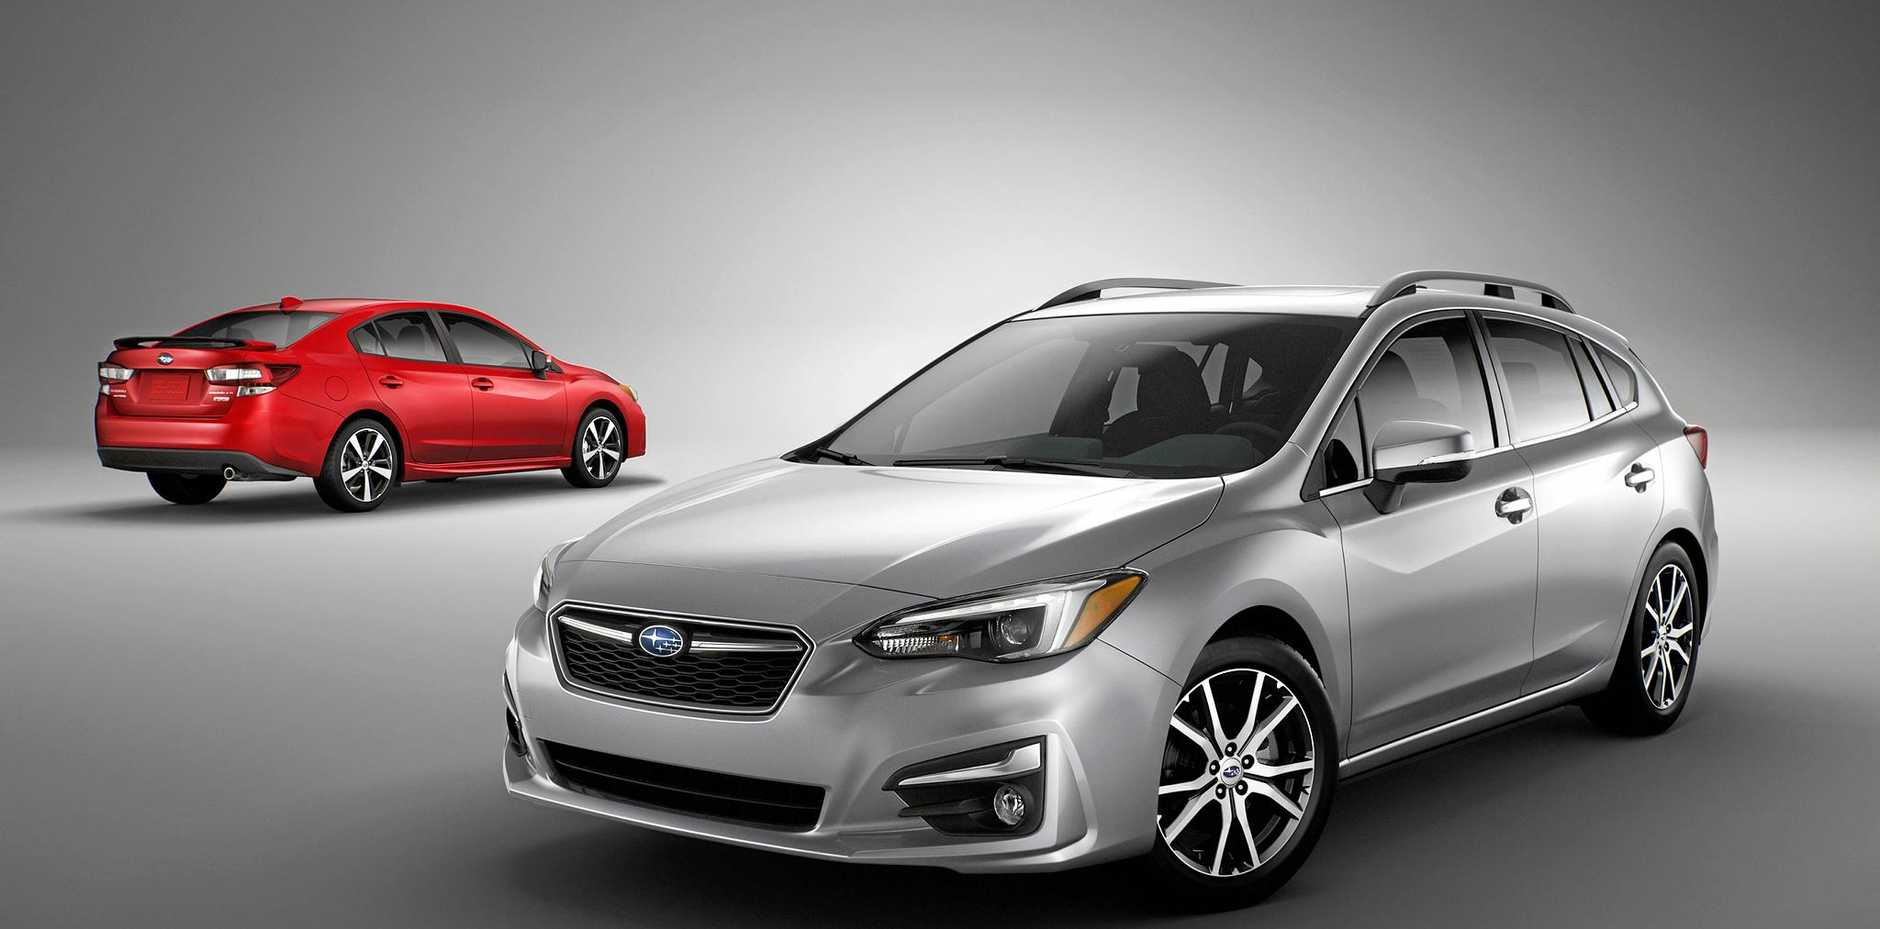 CHRISTMAS ARRIVAL: First deliveries of the 2017 Subaru Impreza will begin from December.